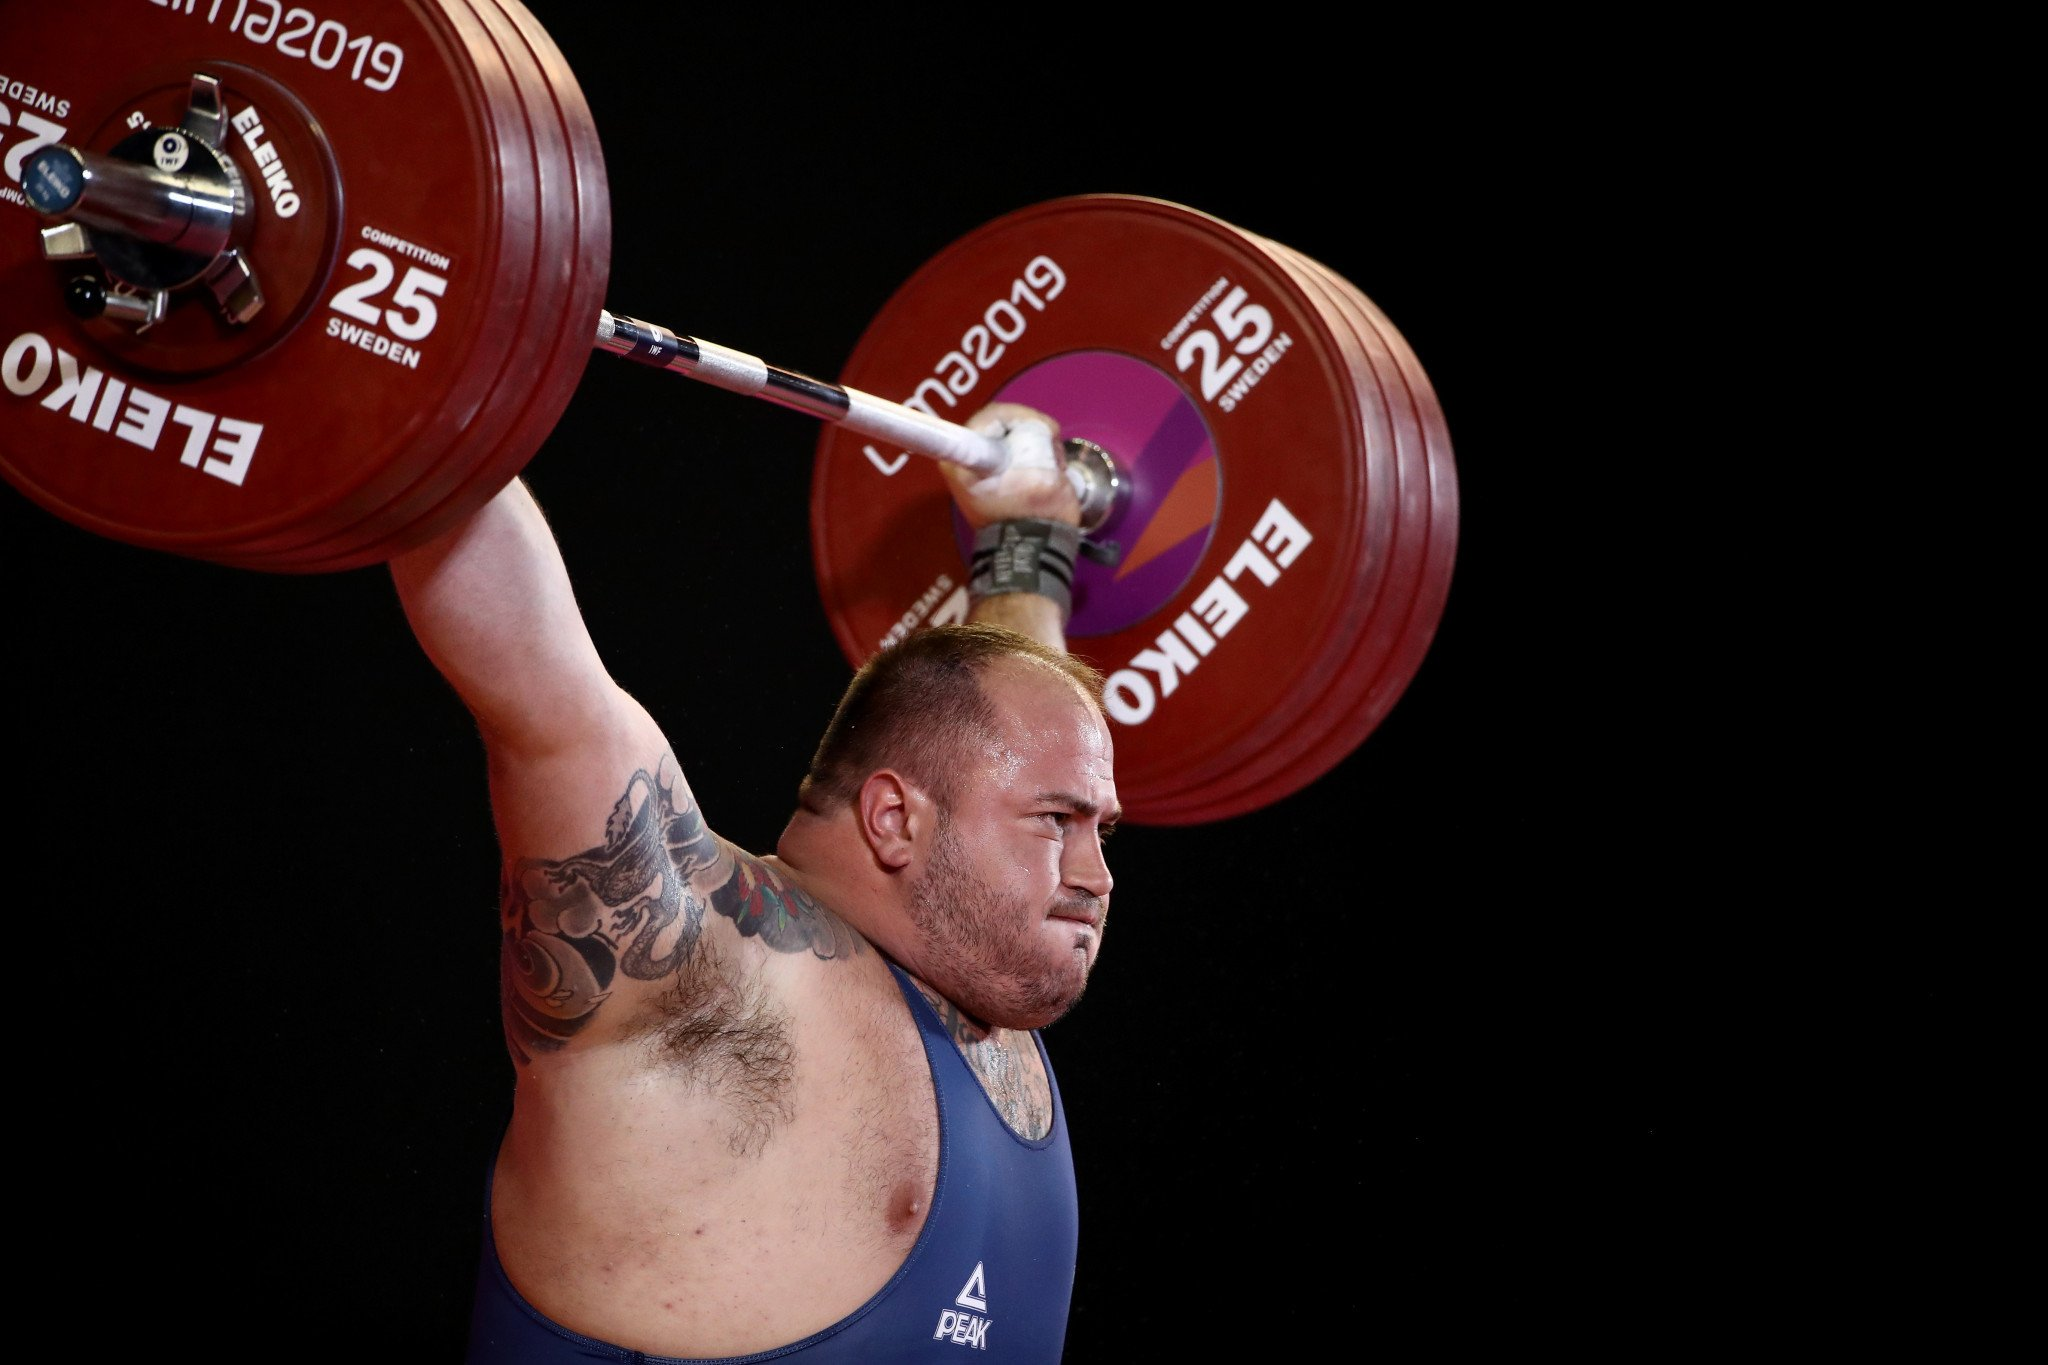 Exclusive: Reis wins landmark weightlifting medal for Brazil after sample-swapping disqualification